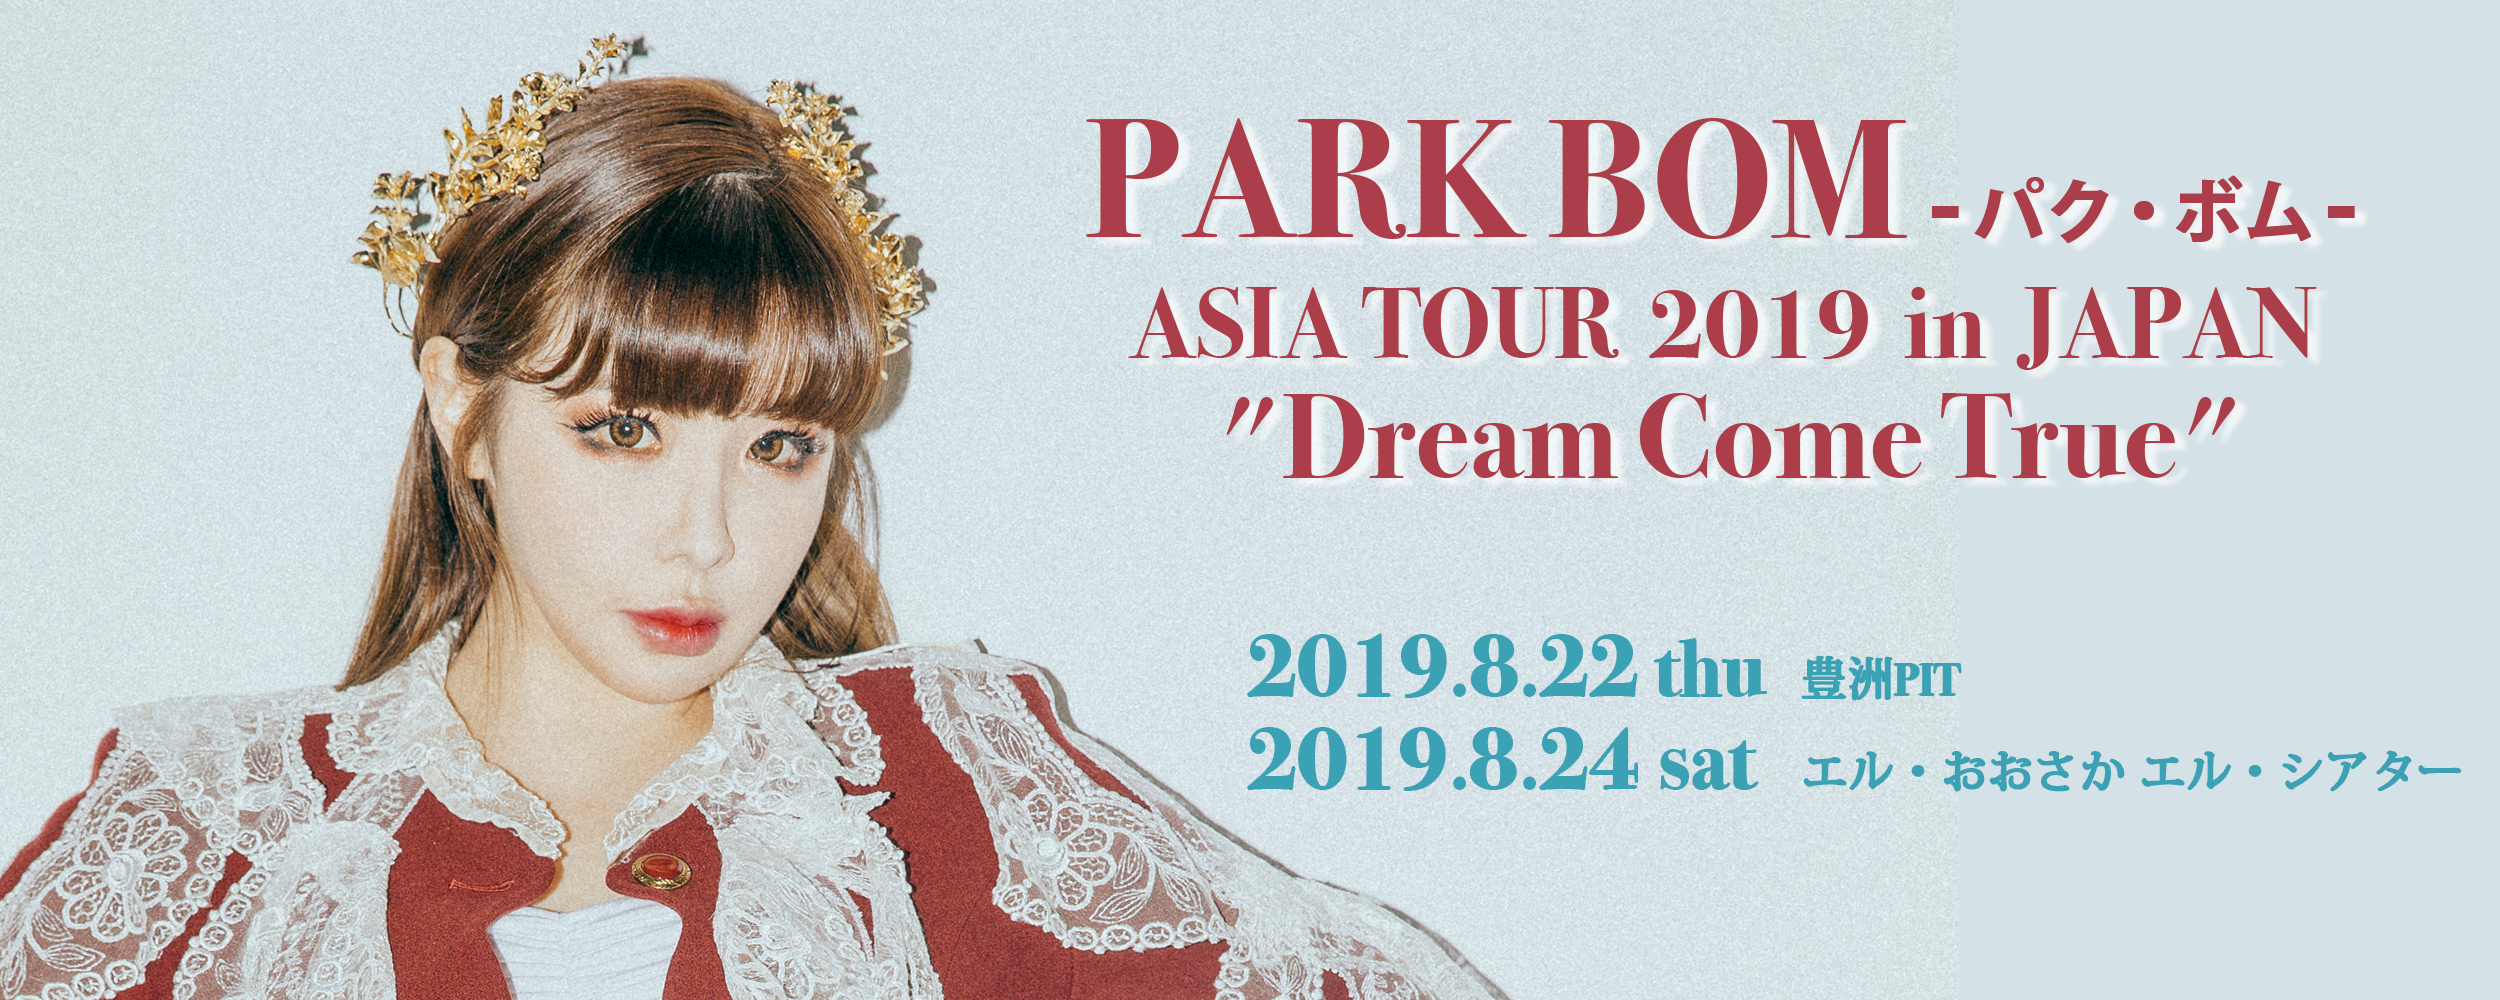 8/22(木)・24(土) パク・ボム PARK BOM ASIA TOUR 2019 in JAPAN